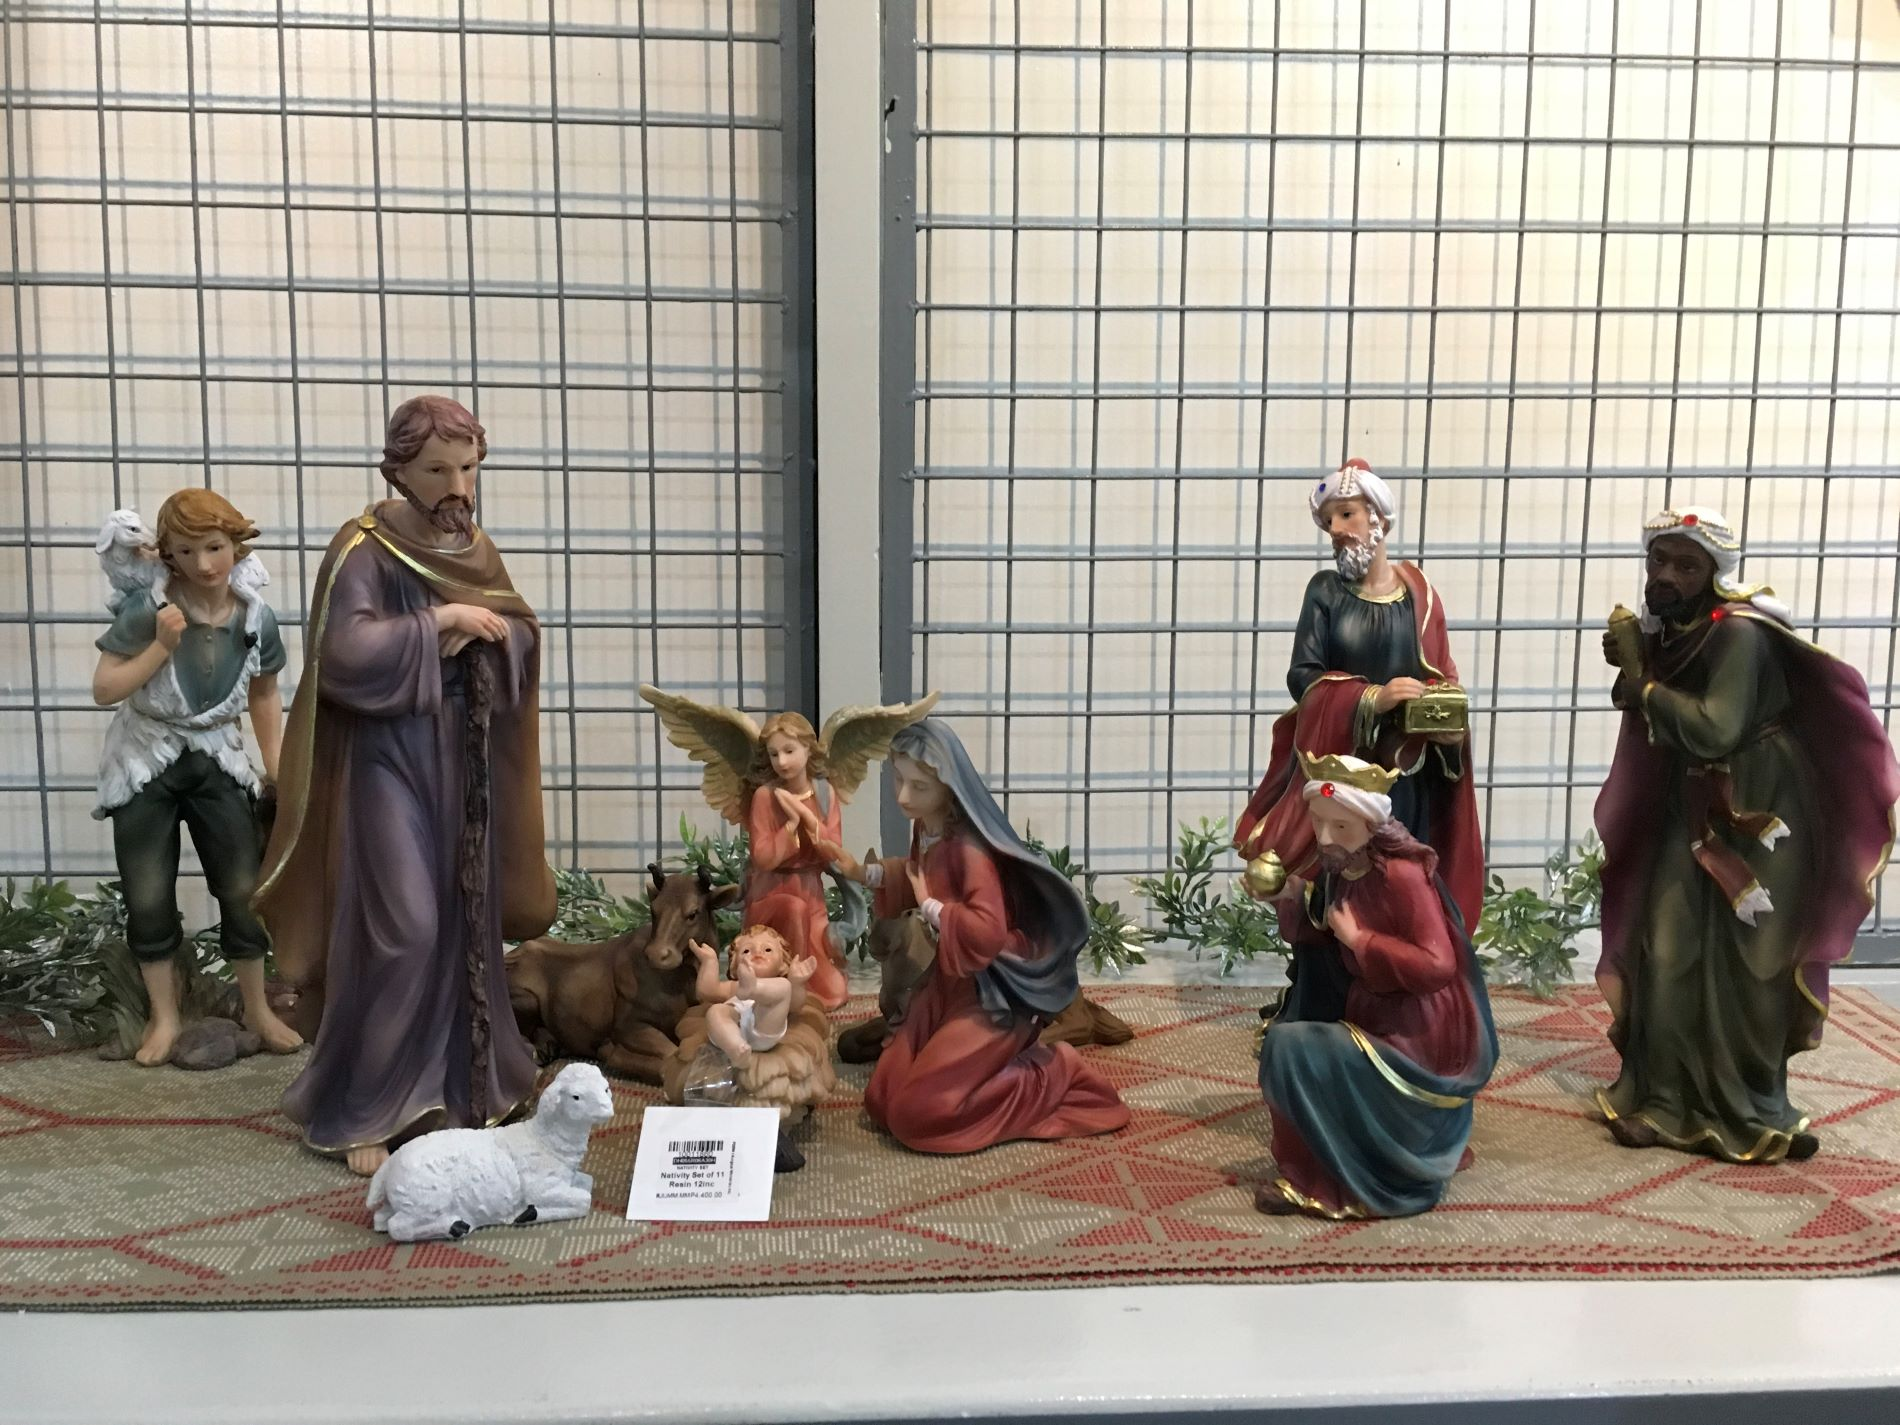 10 Pcs Nativity Set